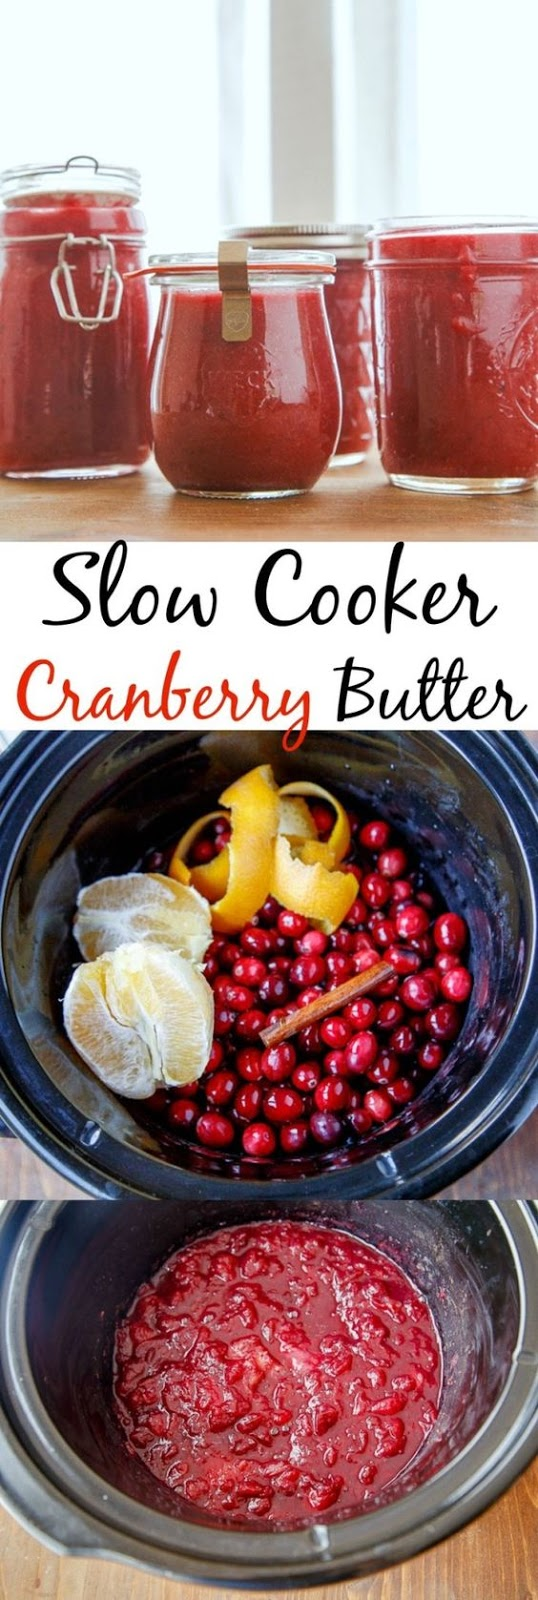 SLOW COOKER CRANBERRY BUTTER